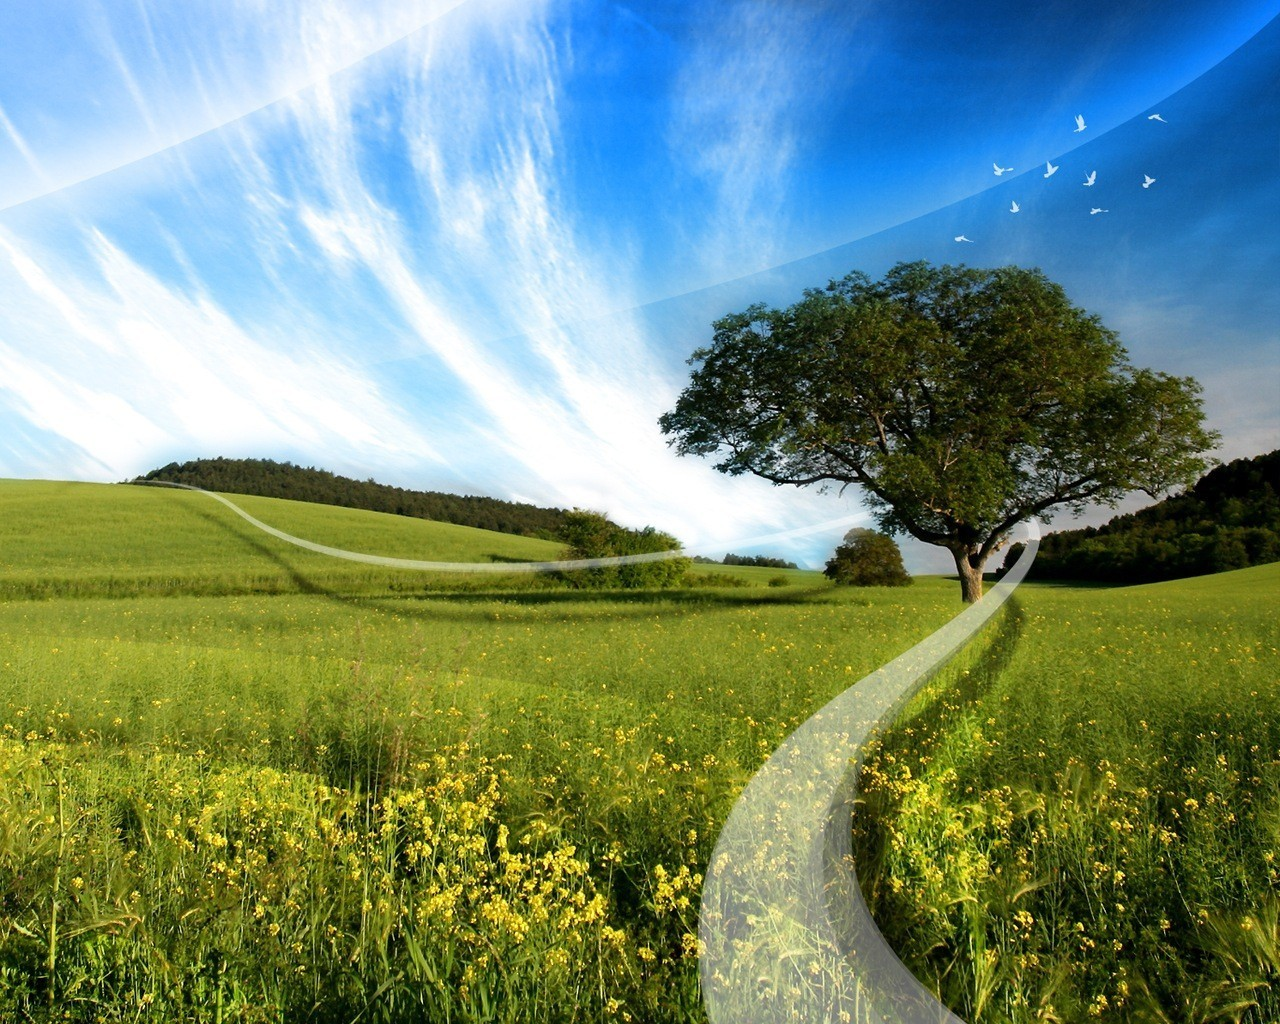 18976 download wallpaper Landscape, Trees, Fields, Background, Sky, Clouds screensavers and pictures for free